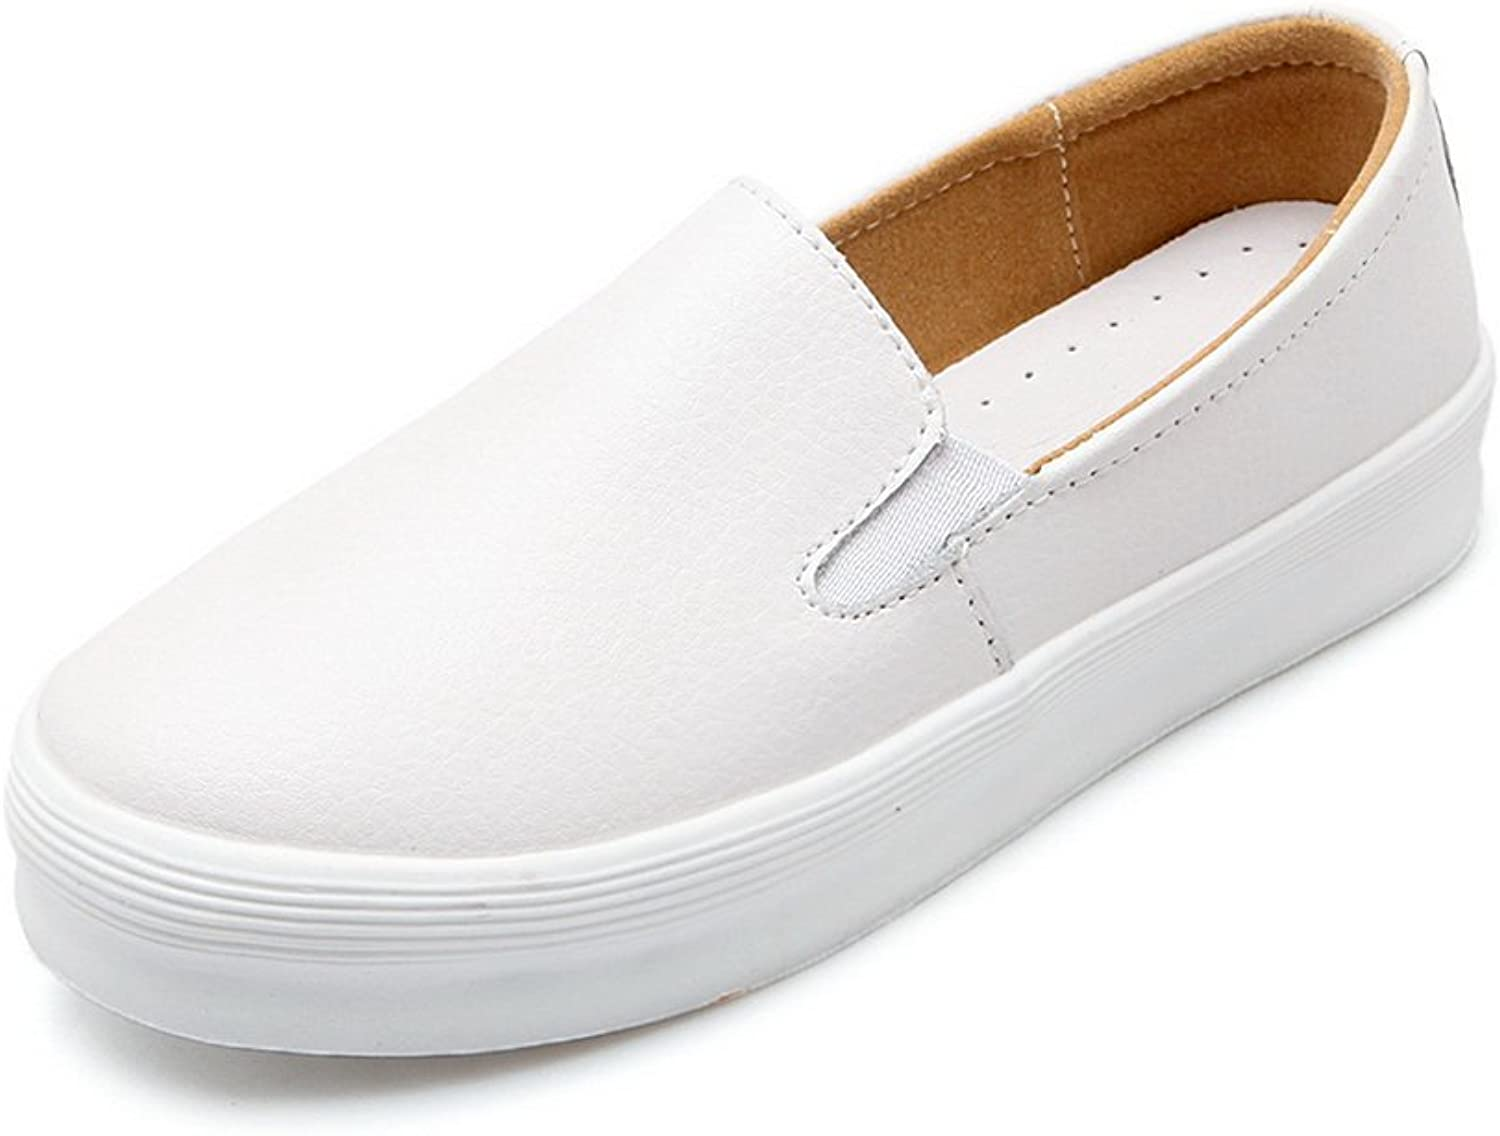 A&N Womens Round-Toe No-Closure Low-Heel Urethane Loafers shoes